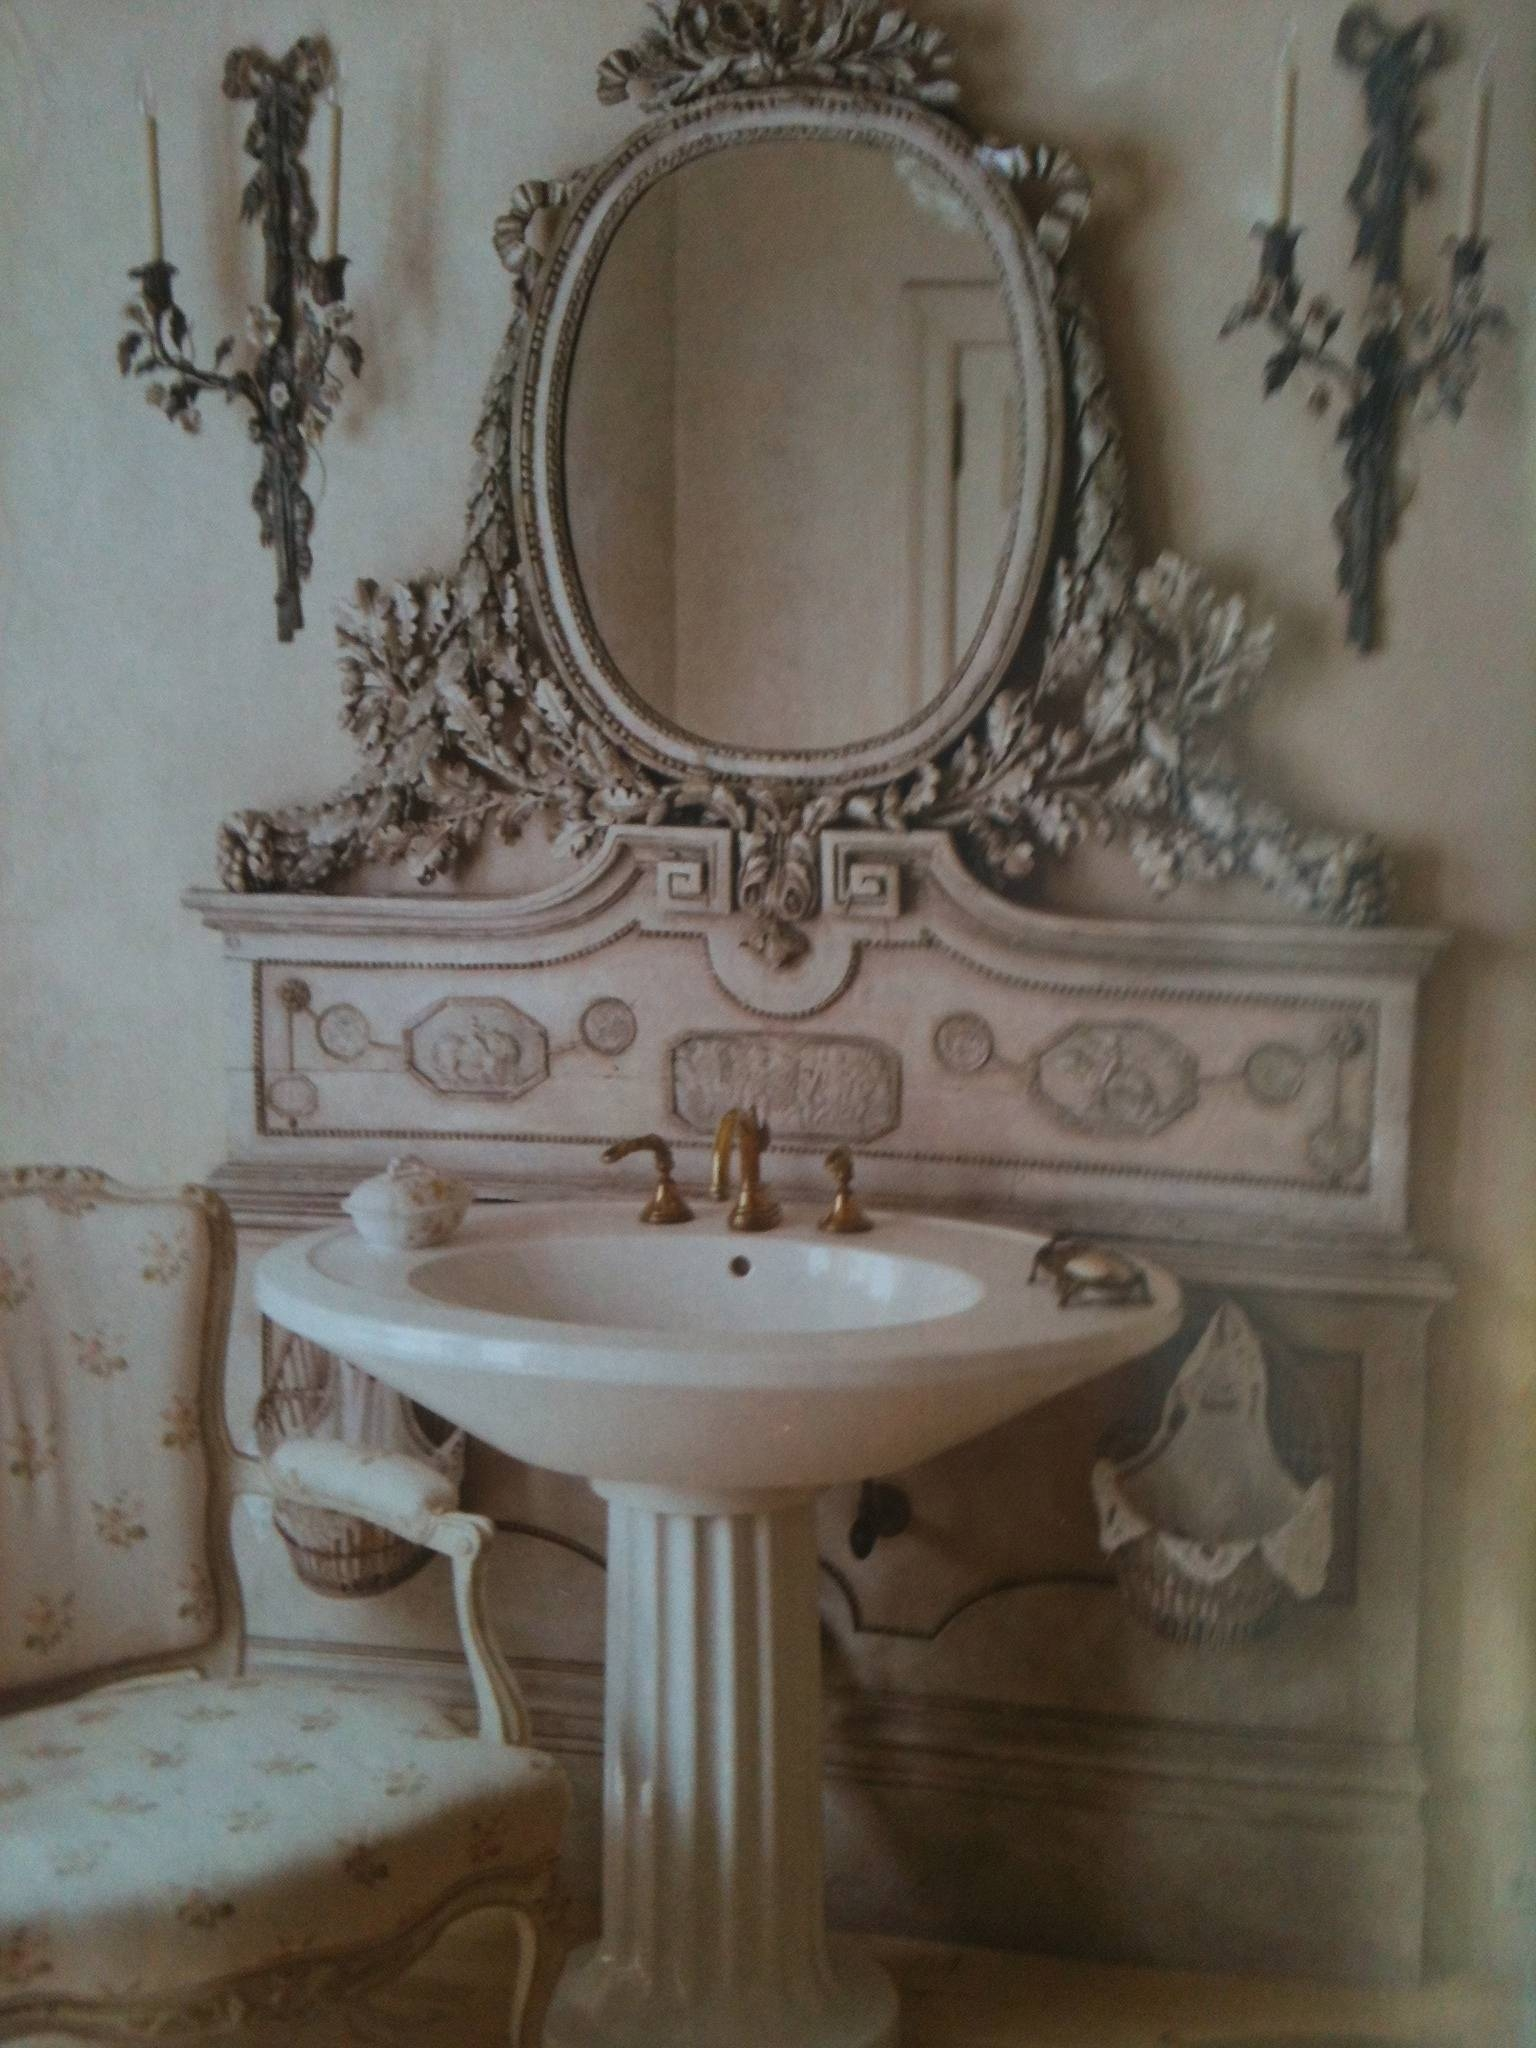 Chic Design Shabby Bathroom Mirror White Baroque Large Vintage Pertaining To Shabby Chic Bathroom Mirrors (View 10 of 15)